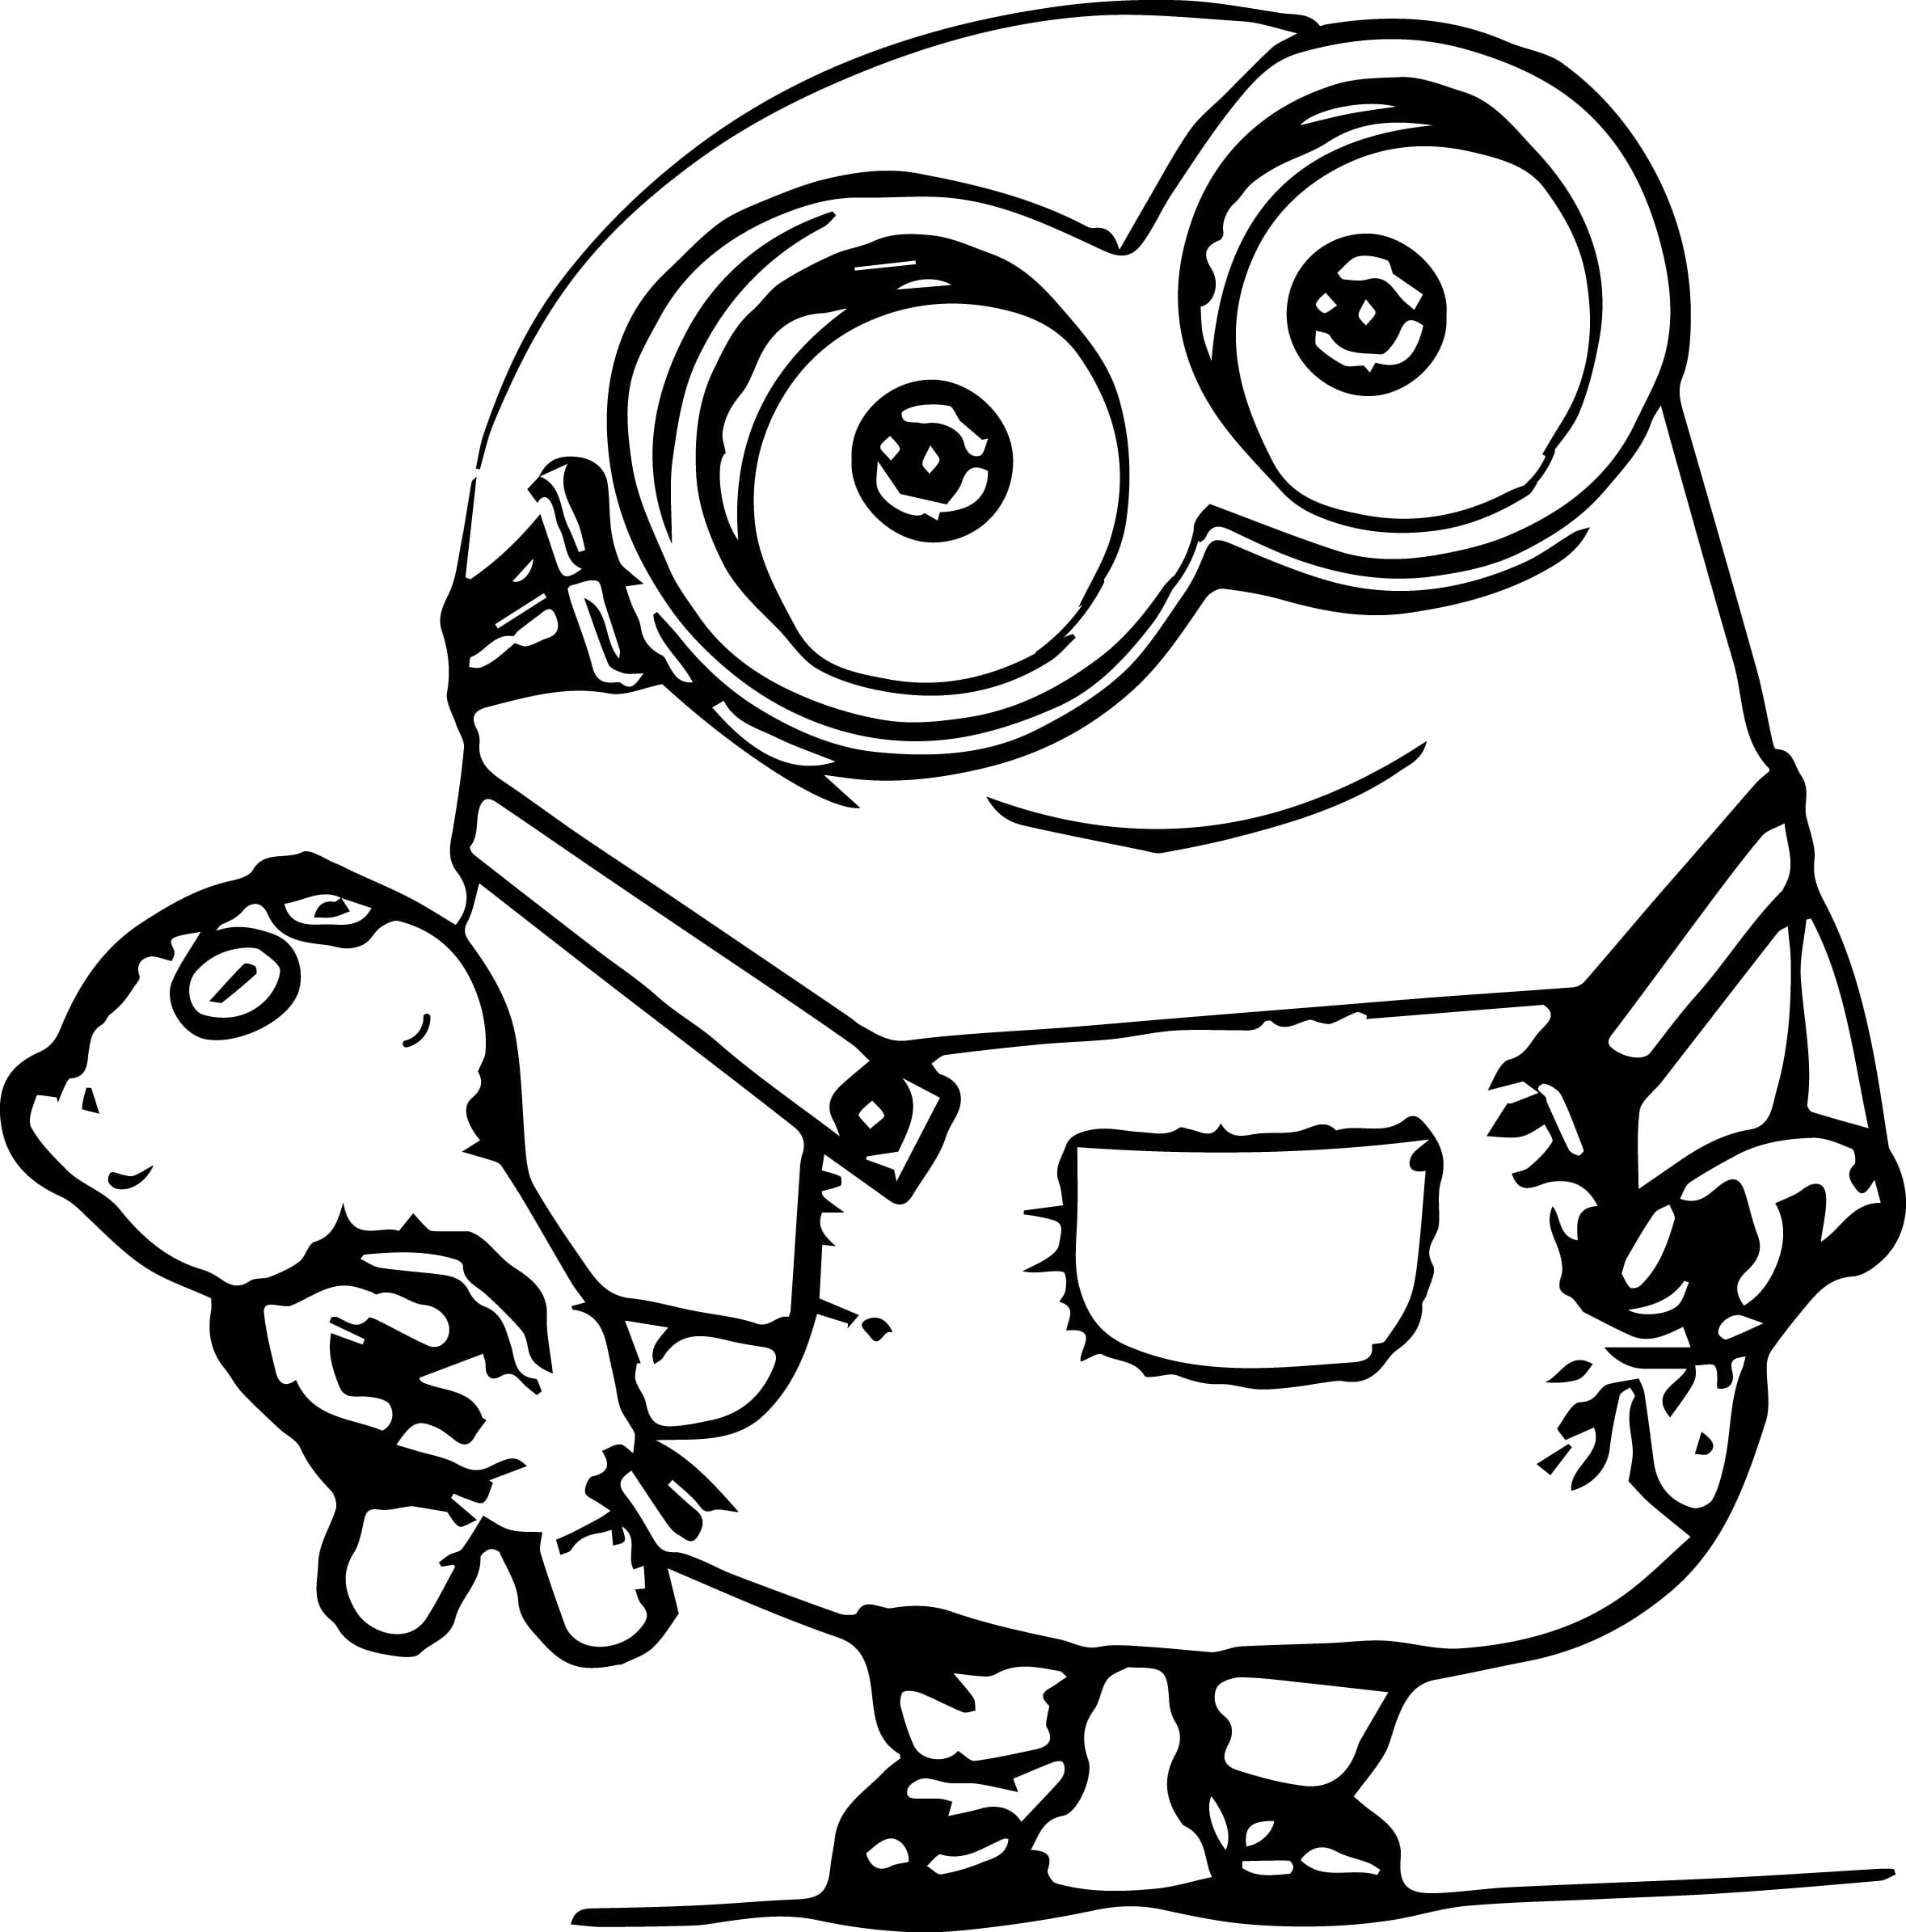 Awesome Minions Coloring Pages Wecoloringpage Printable Of Cute